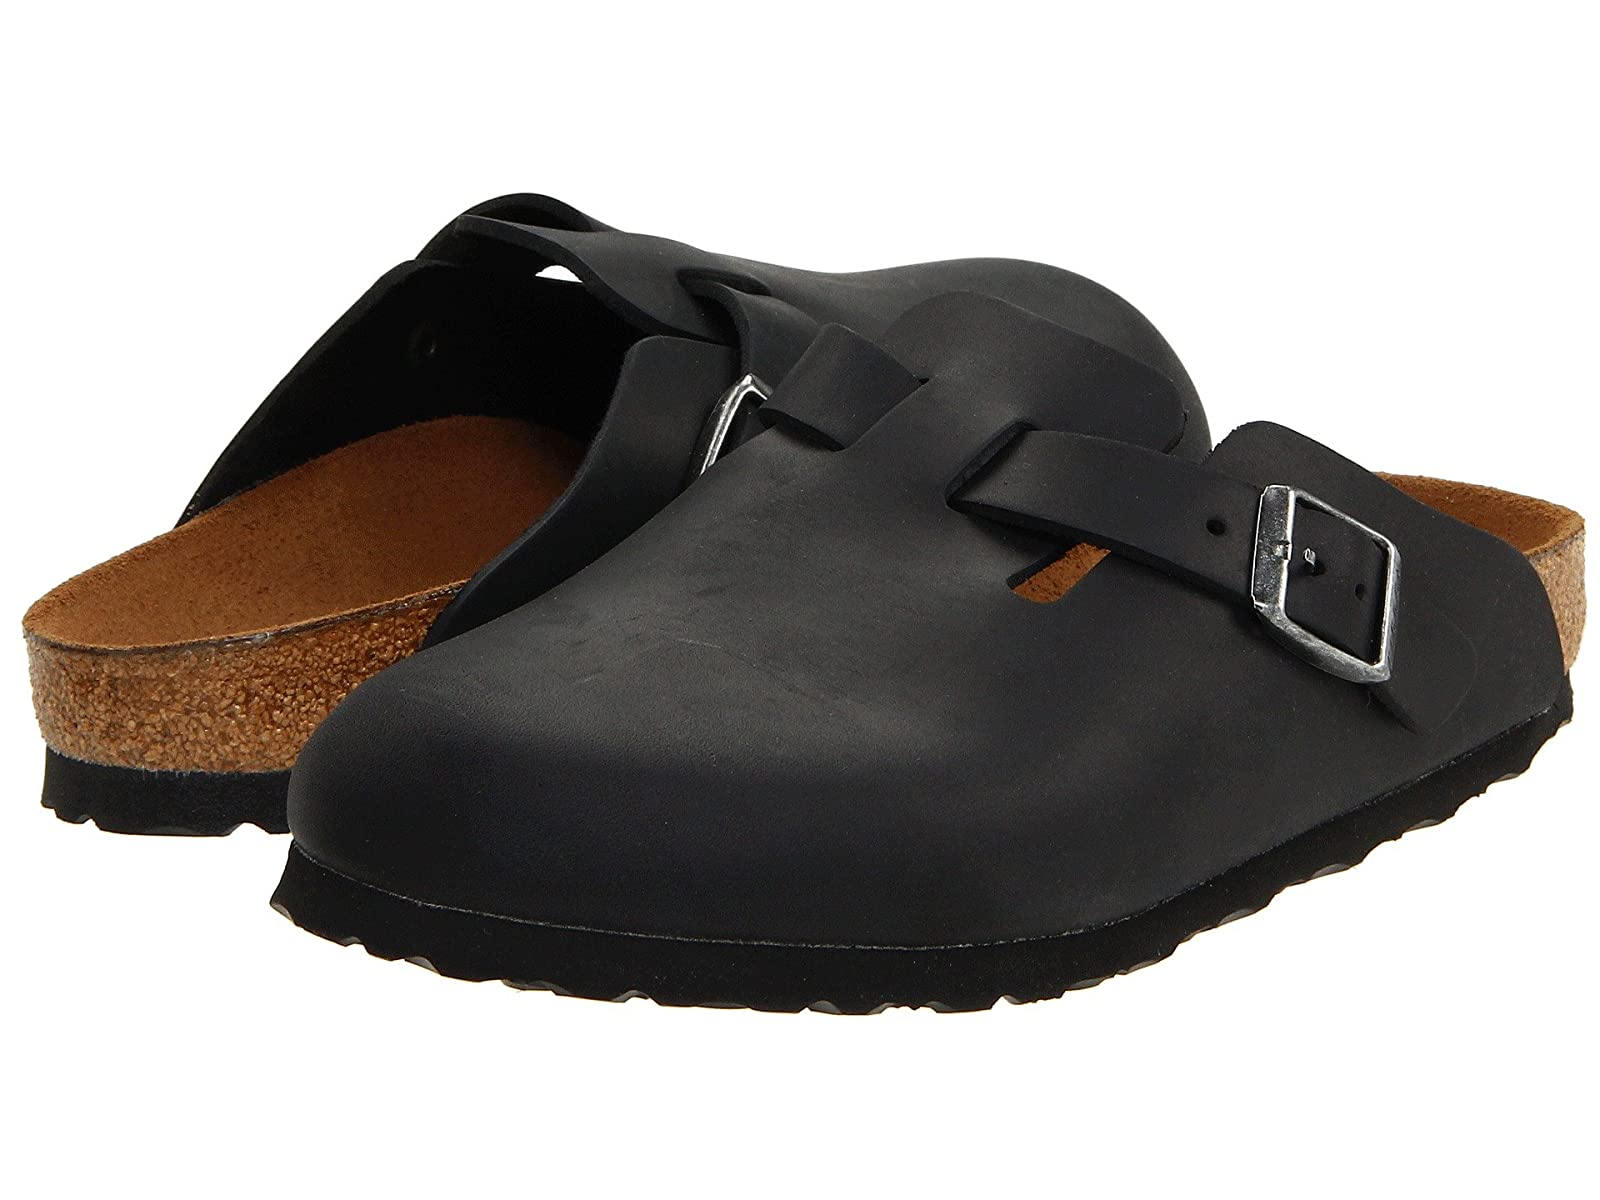 Birkenstock Boston - Oiled Leather (Unisex)Economical and quality shoes